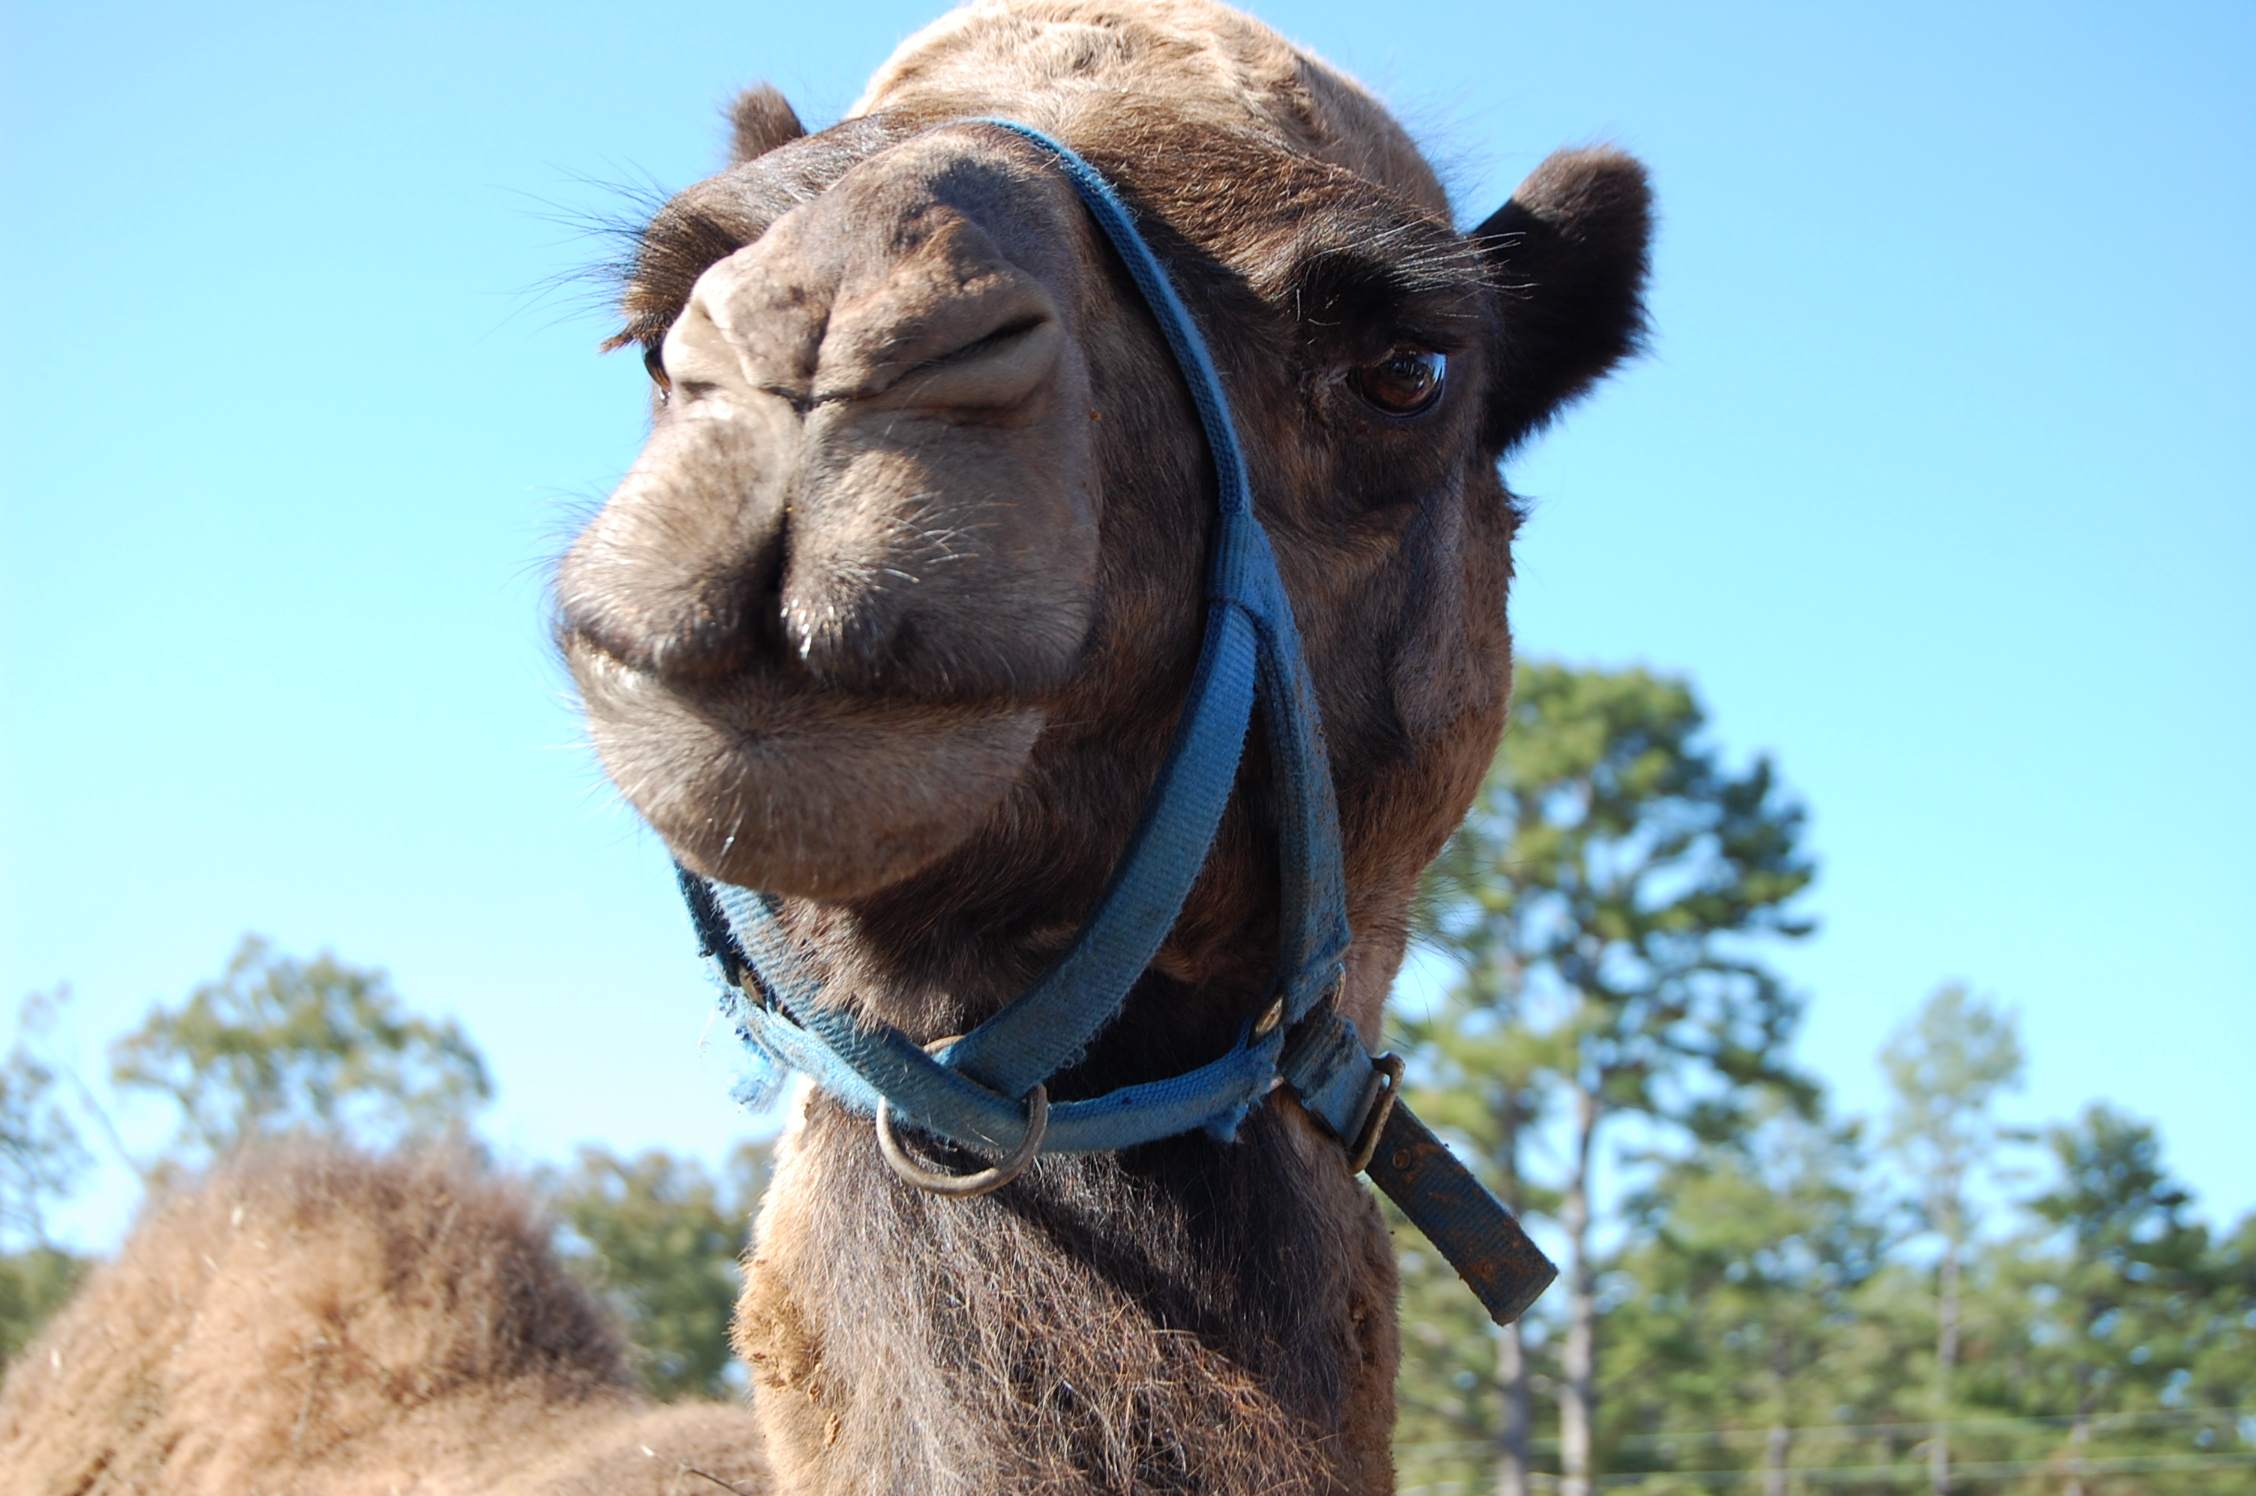 You can meet Abu the camel at Heifer Ranch. Heifer Ranch is just a little more than 20 miles from Petit Jean State Park where the Hoof it for Heifer trail run is held.